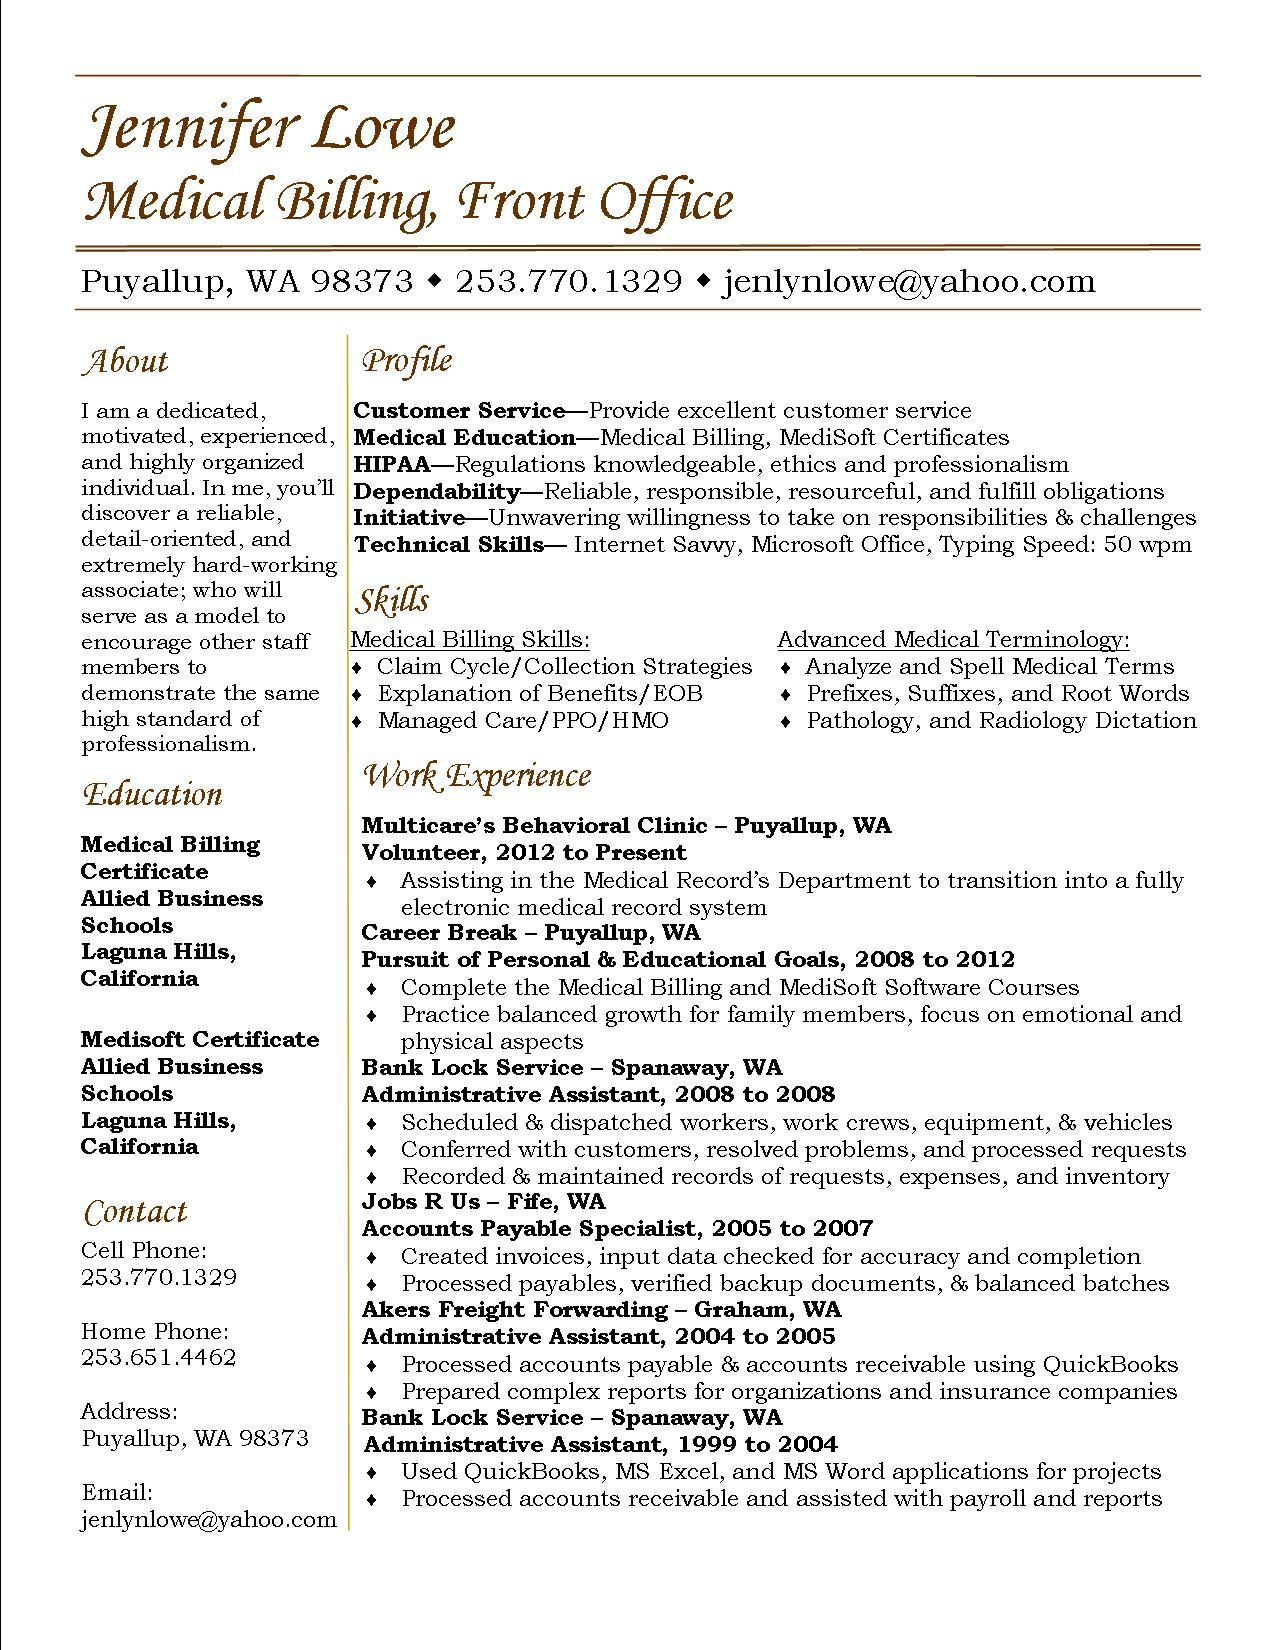 resume Resume Format For Medical Billing jennifer lowe resume medical billing career coder samples and coding example samplebusinessresume